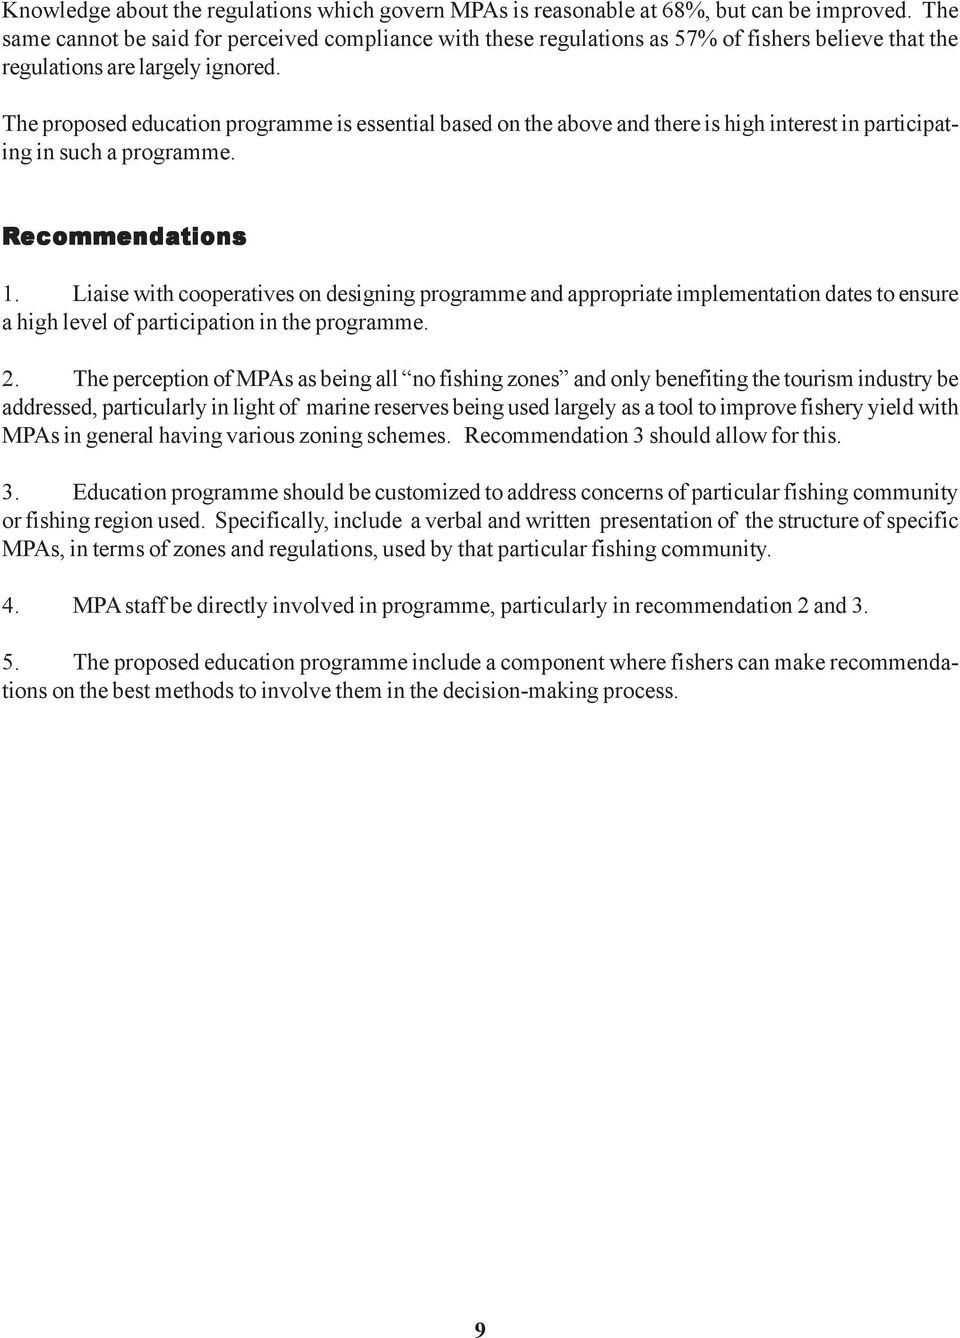 The proposed education programme is essential based on the above and there is high interest in participating in such a programme. Recommenda ecommendations 1.